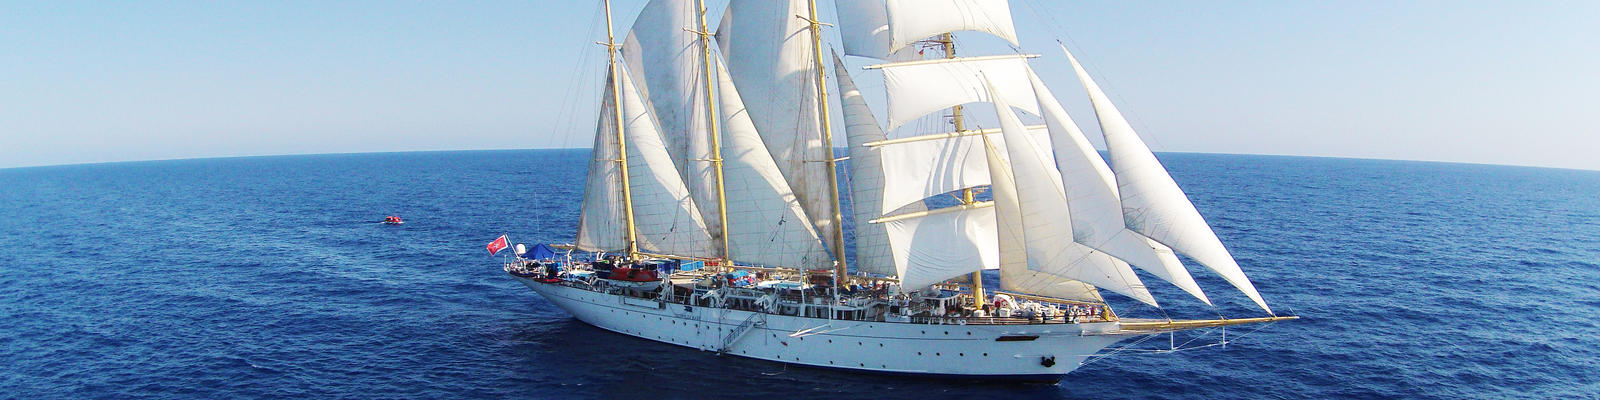 The Best Star Clippers March Cruises With Prices On Cruise - Star clipper cruises